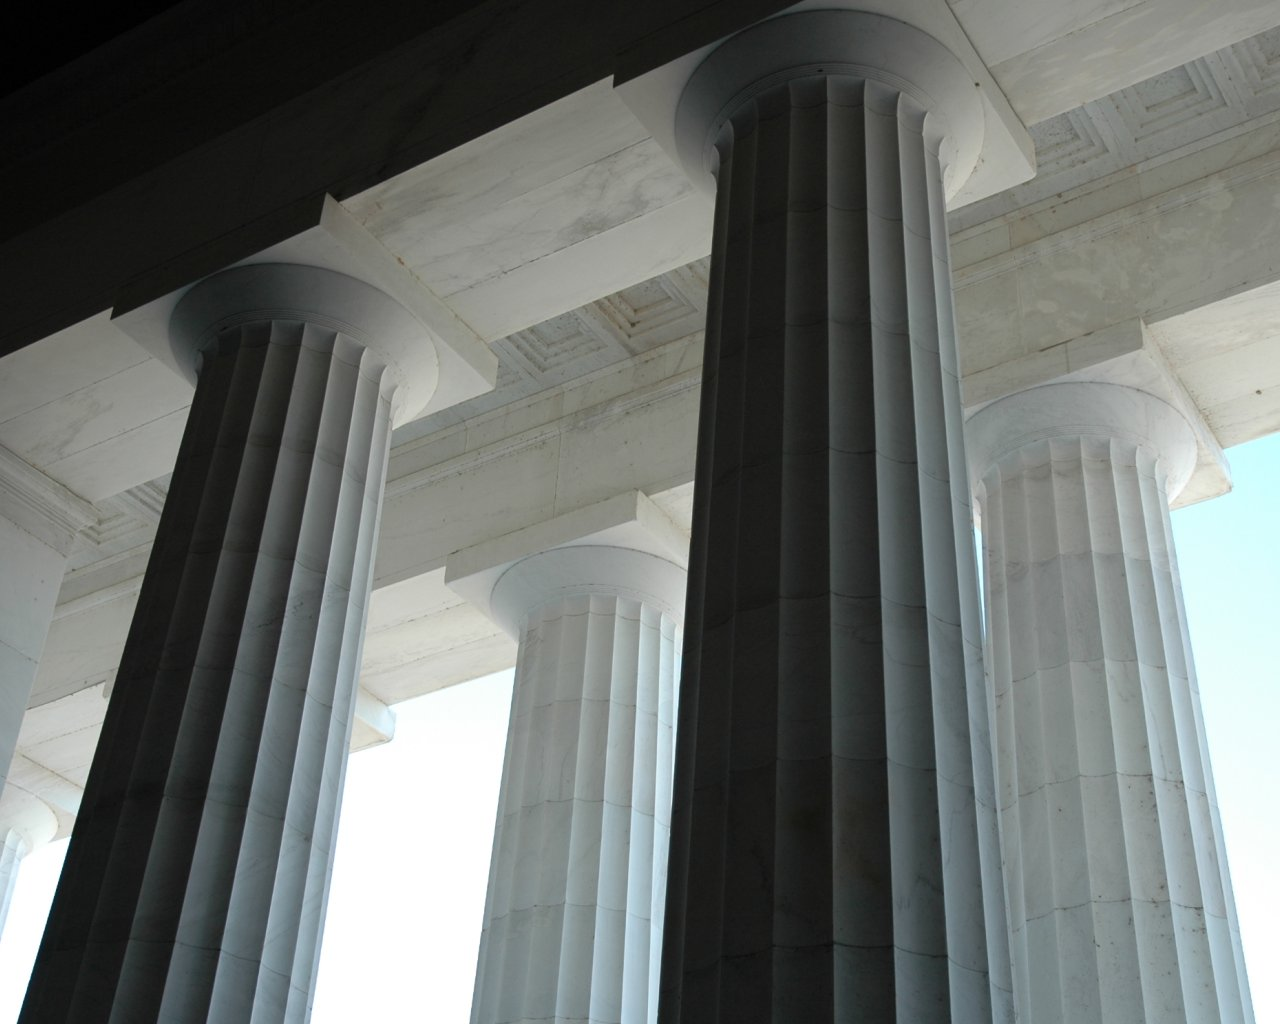 Colonnes du Lincoln Memorial à Washington D.C.